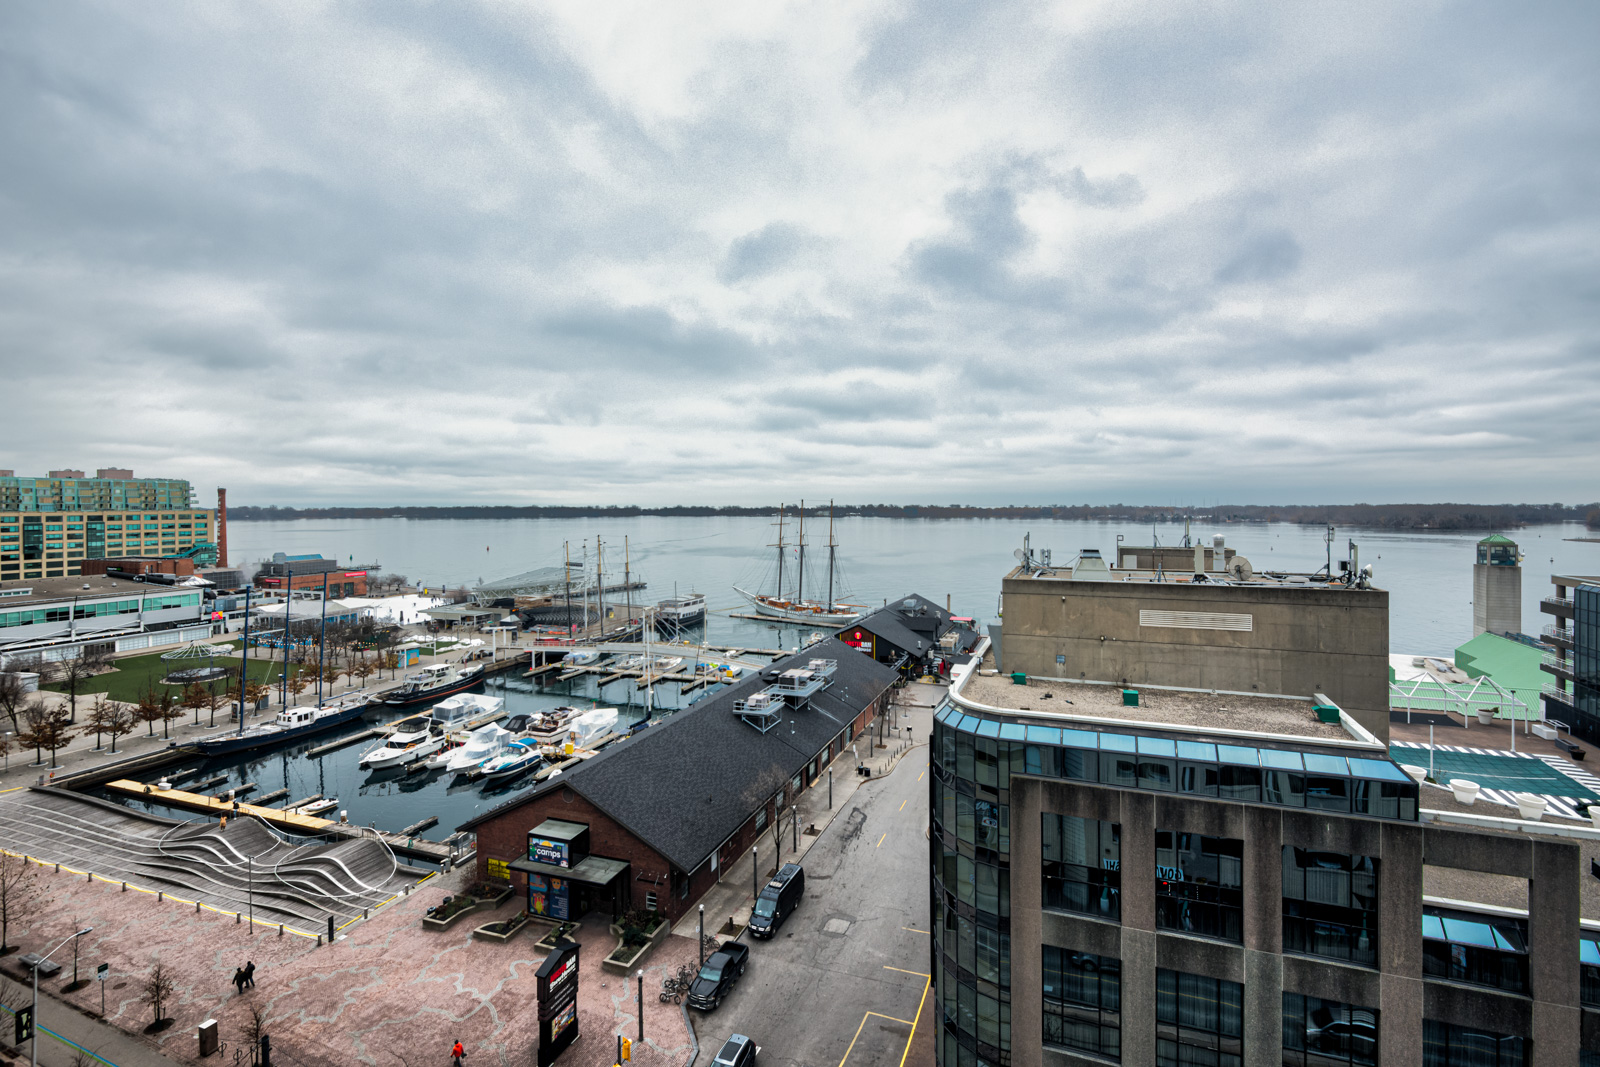 View of Toronto Waterfront, pier with boats, Lake Ontario and streets below Harbourfront II.